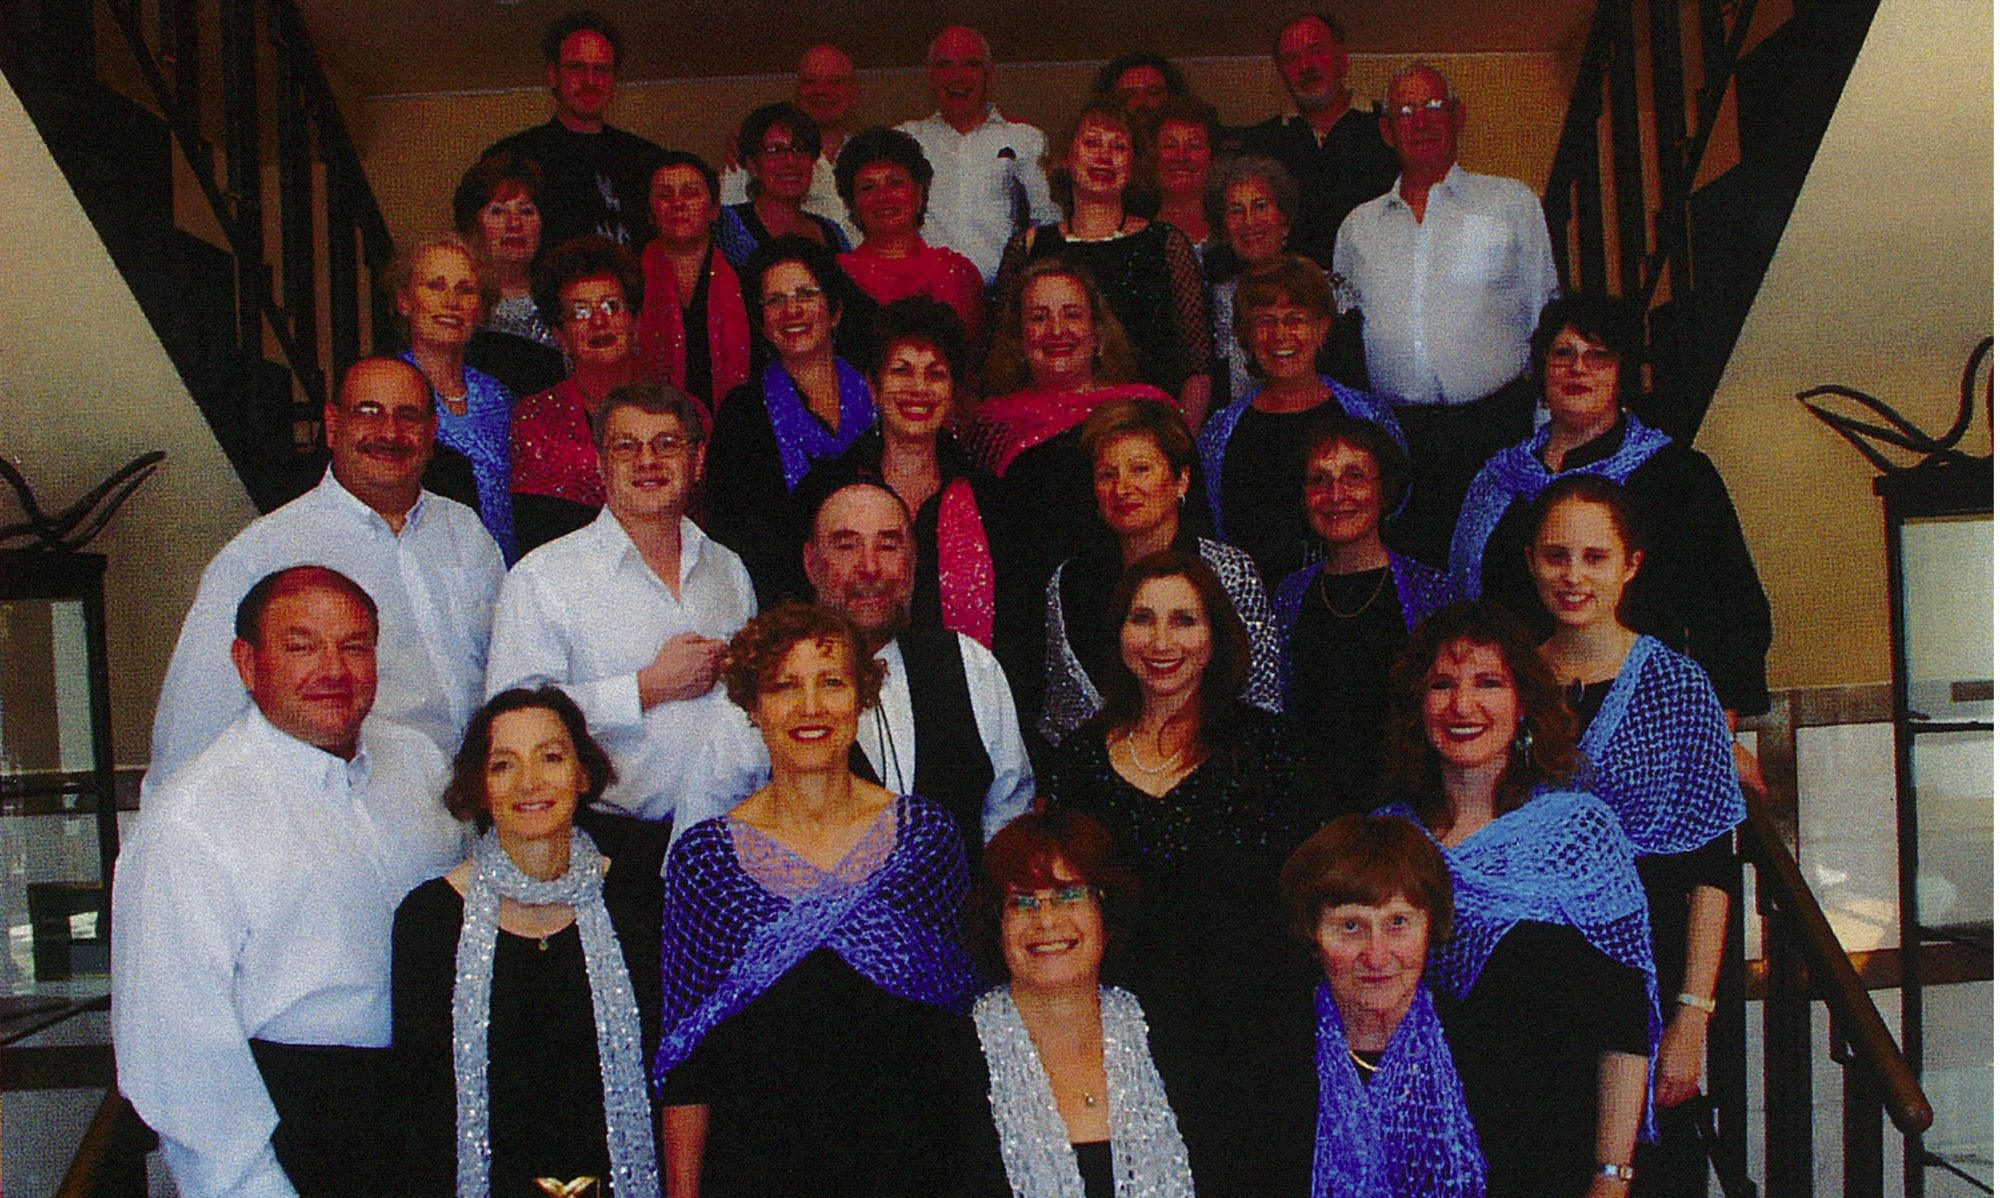 The Liron Choir